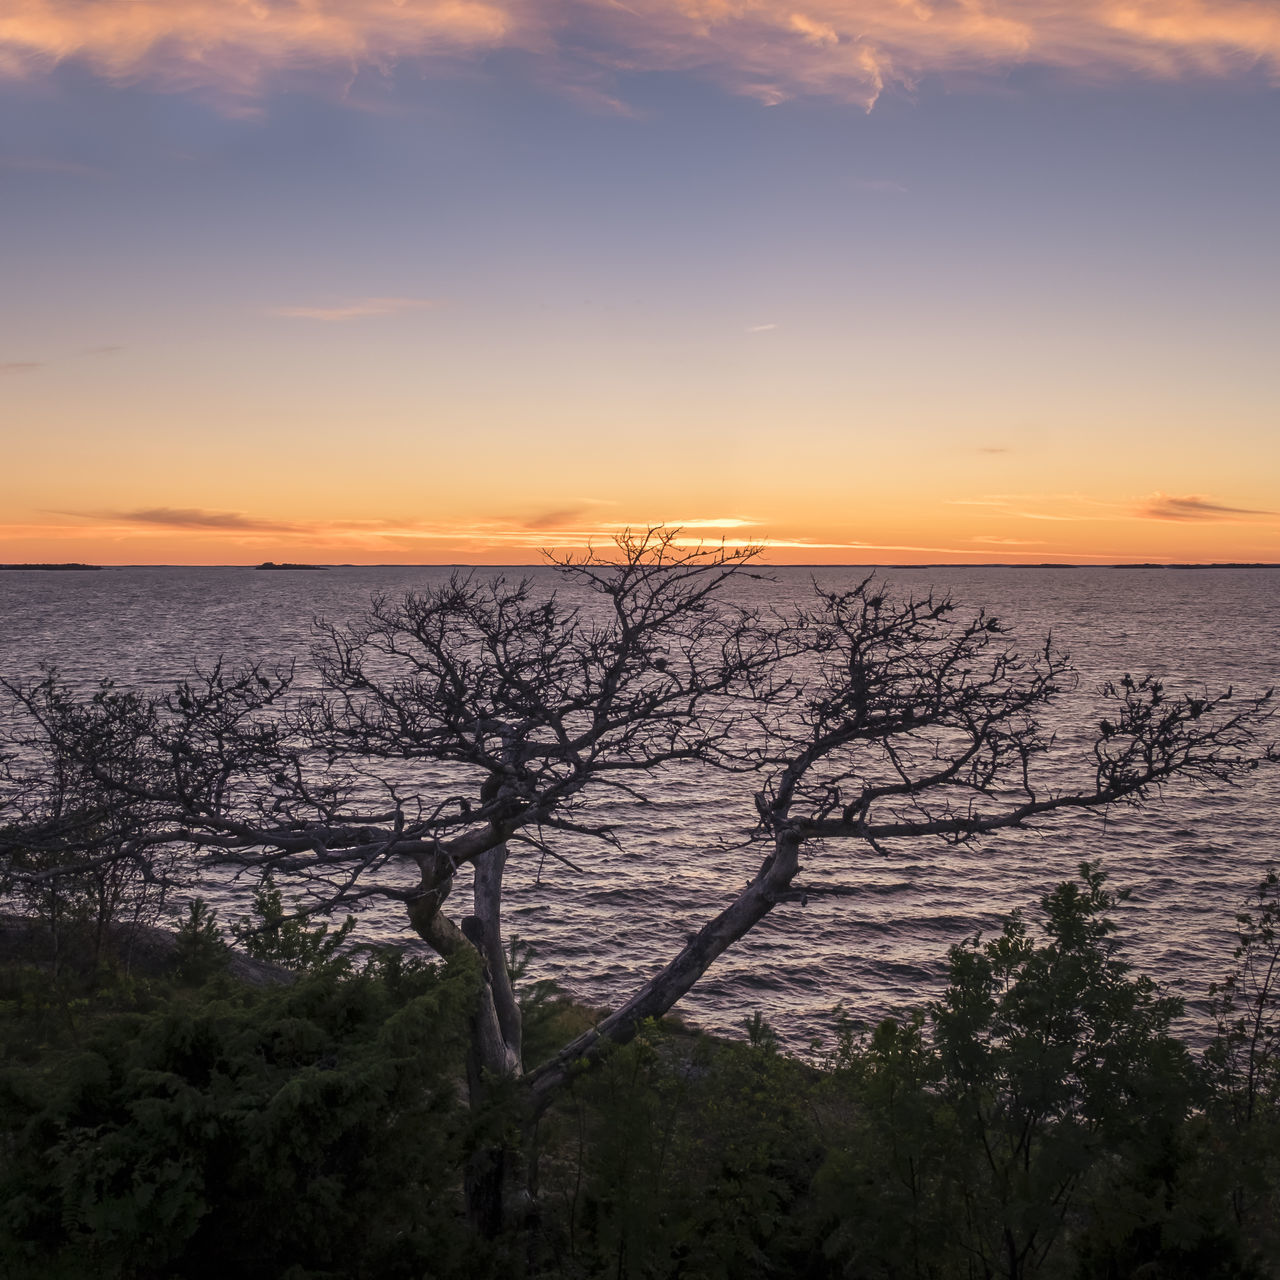 Scenic landscape at beautiful evening with single tree in southern Finland Beauty In Nature Blue Sky Branch Colorful Sky Colors Deadwood  Evening Horizon Over Water Idyllic Landscape Leafless Nature No People Outdoors Romantic Sky Scenics Sea Single Tree Sky Summer Summertime Sunset Tranquility Tree Water